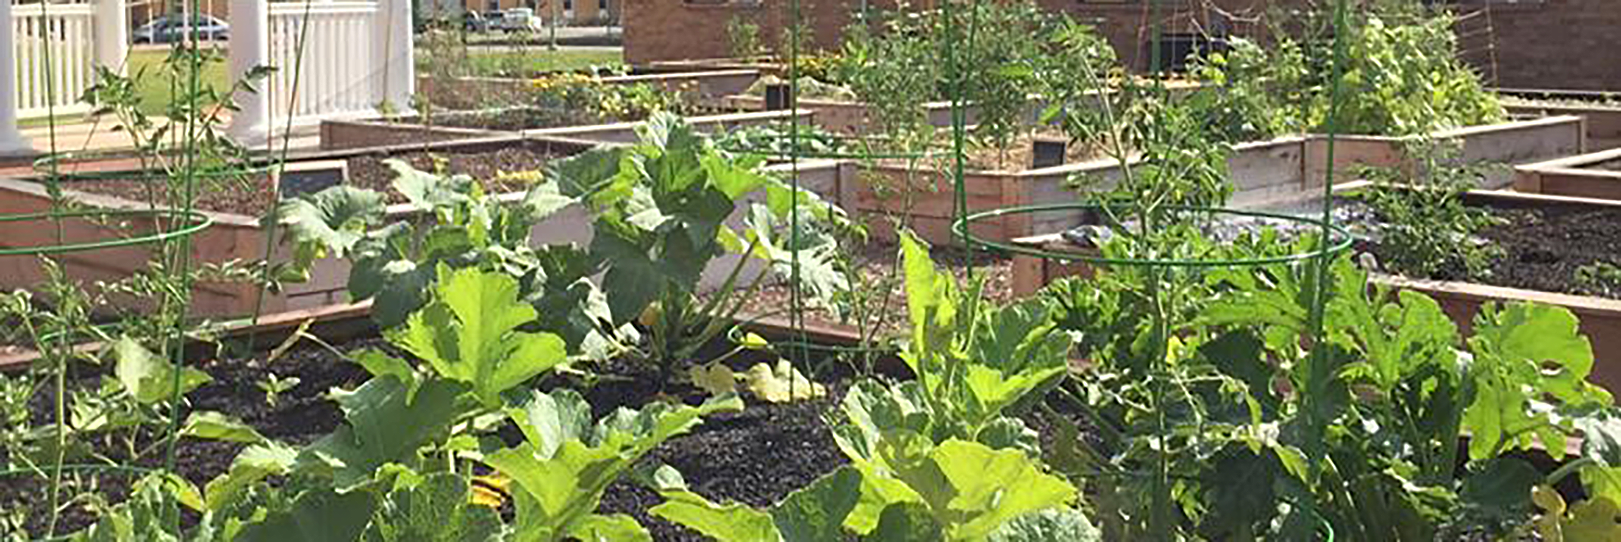 Sustainability Community Garden